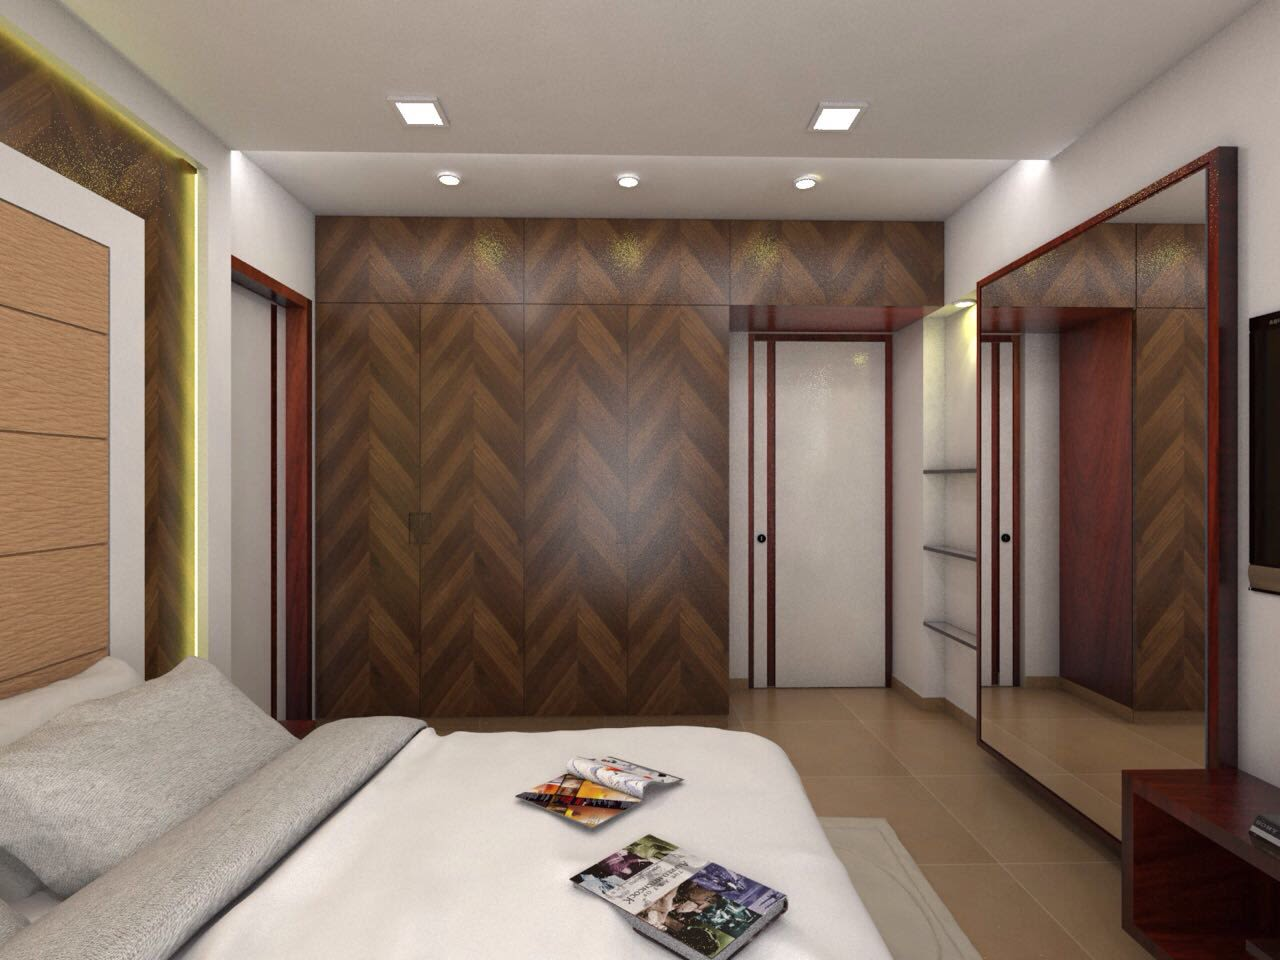 Guest Bedroom with Wooden Wardrobe and Full Wall Mirror by Umesh Vishwakarma Bedroom Contemporary | Interior Design Photos & Ideas